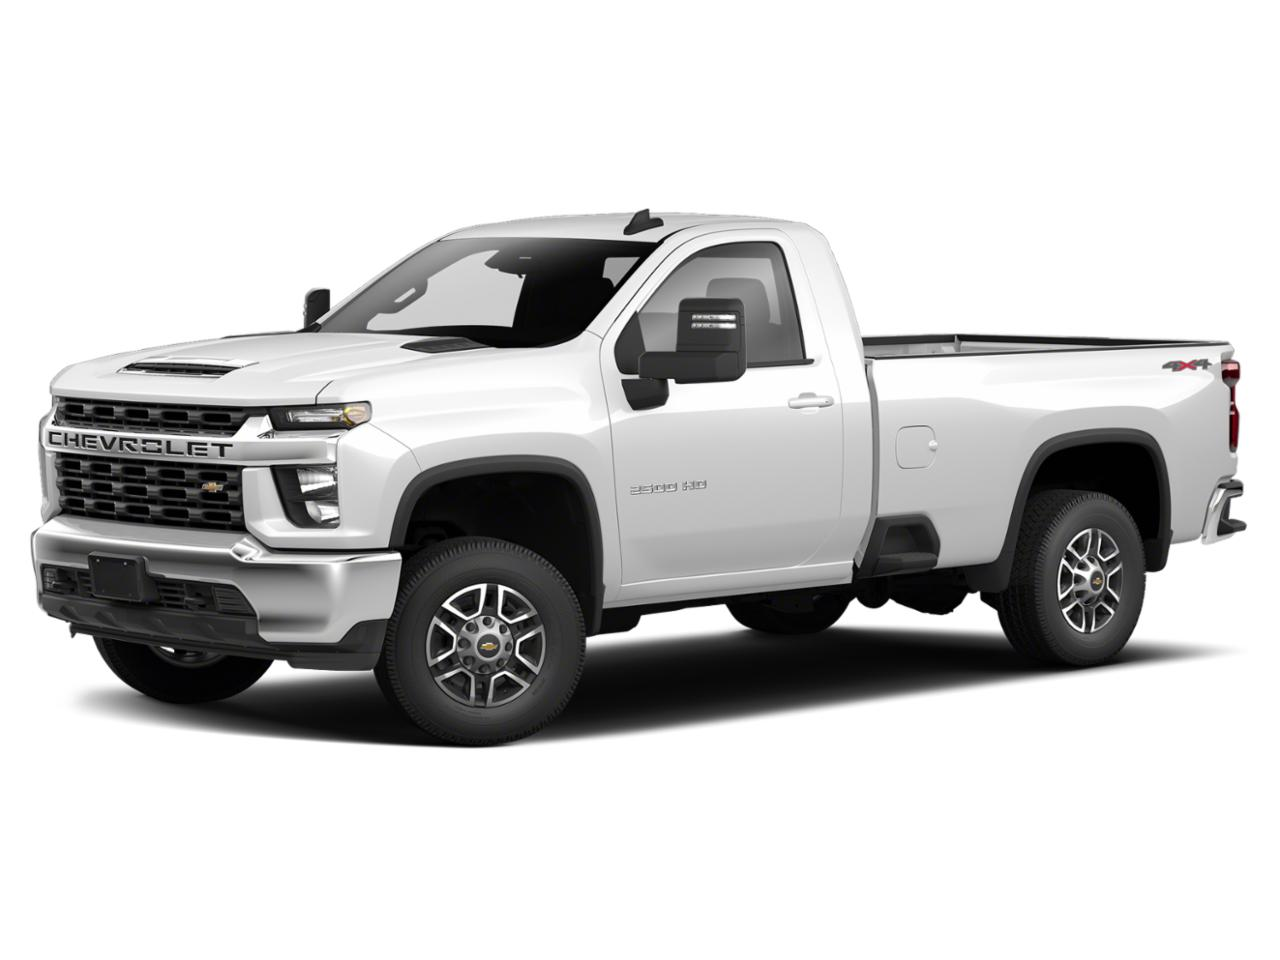 2020 Chevrolet Silverado 3500HD Vehicle Photo in Mukwonago, WI 53149